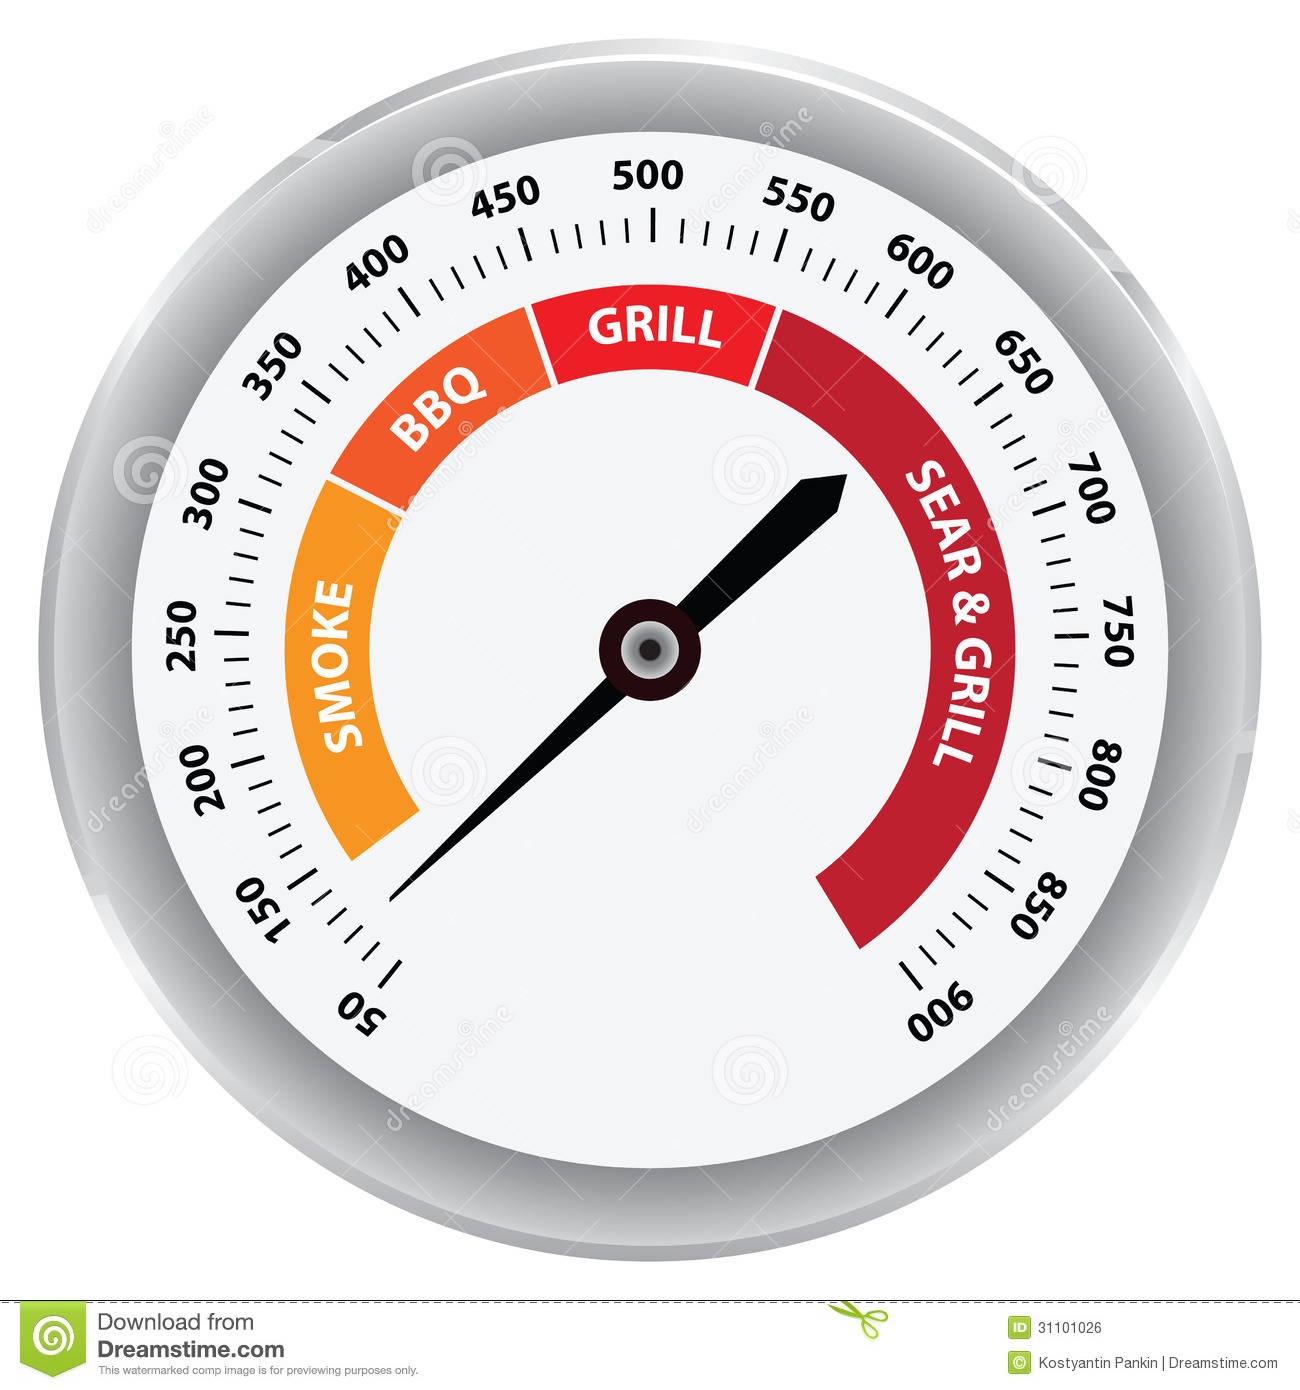 Classic Grill Thermometer Royalty Free Stock Image - Image: 31101026